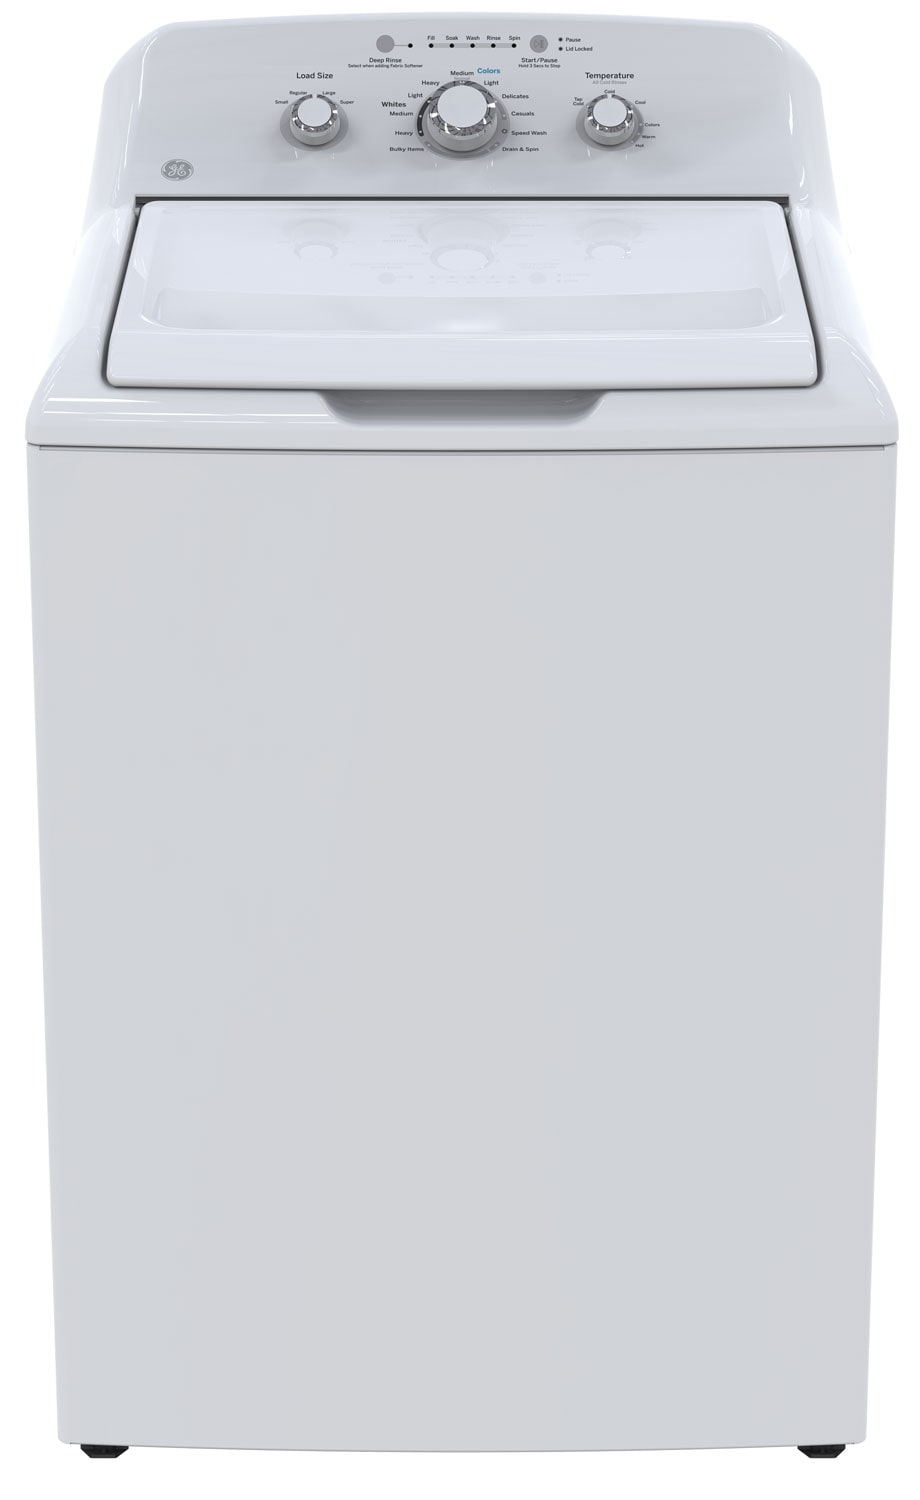 GE 4.4 Cu. Ft. Top-Load Washer – GTW330BMKWW